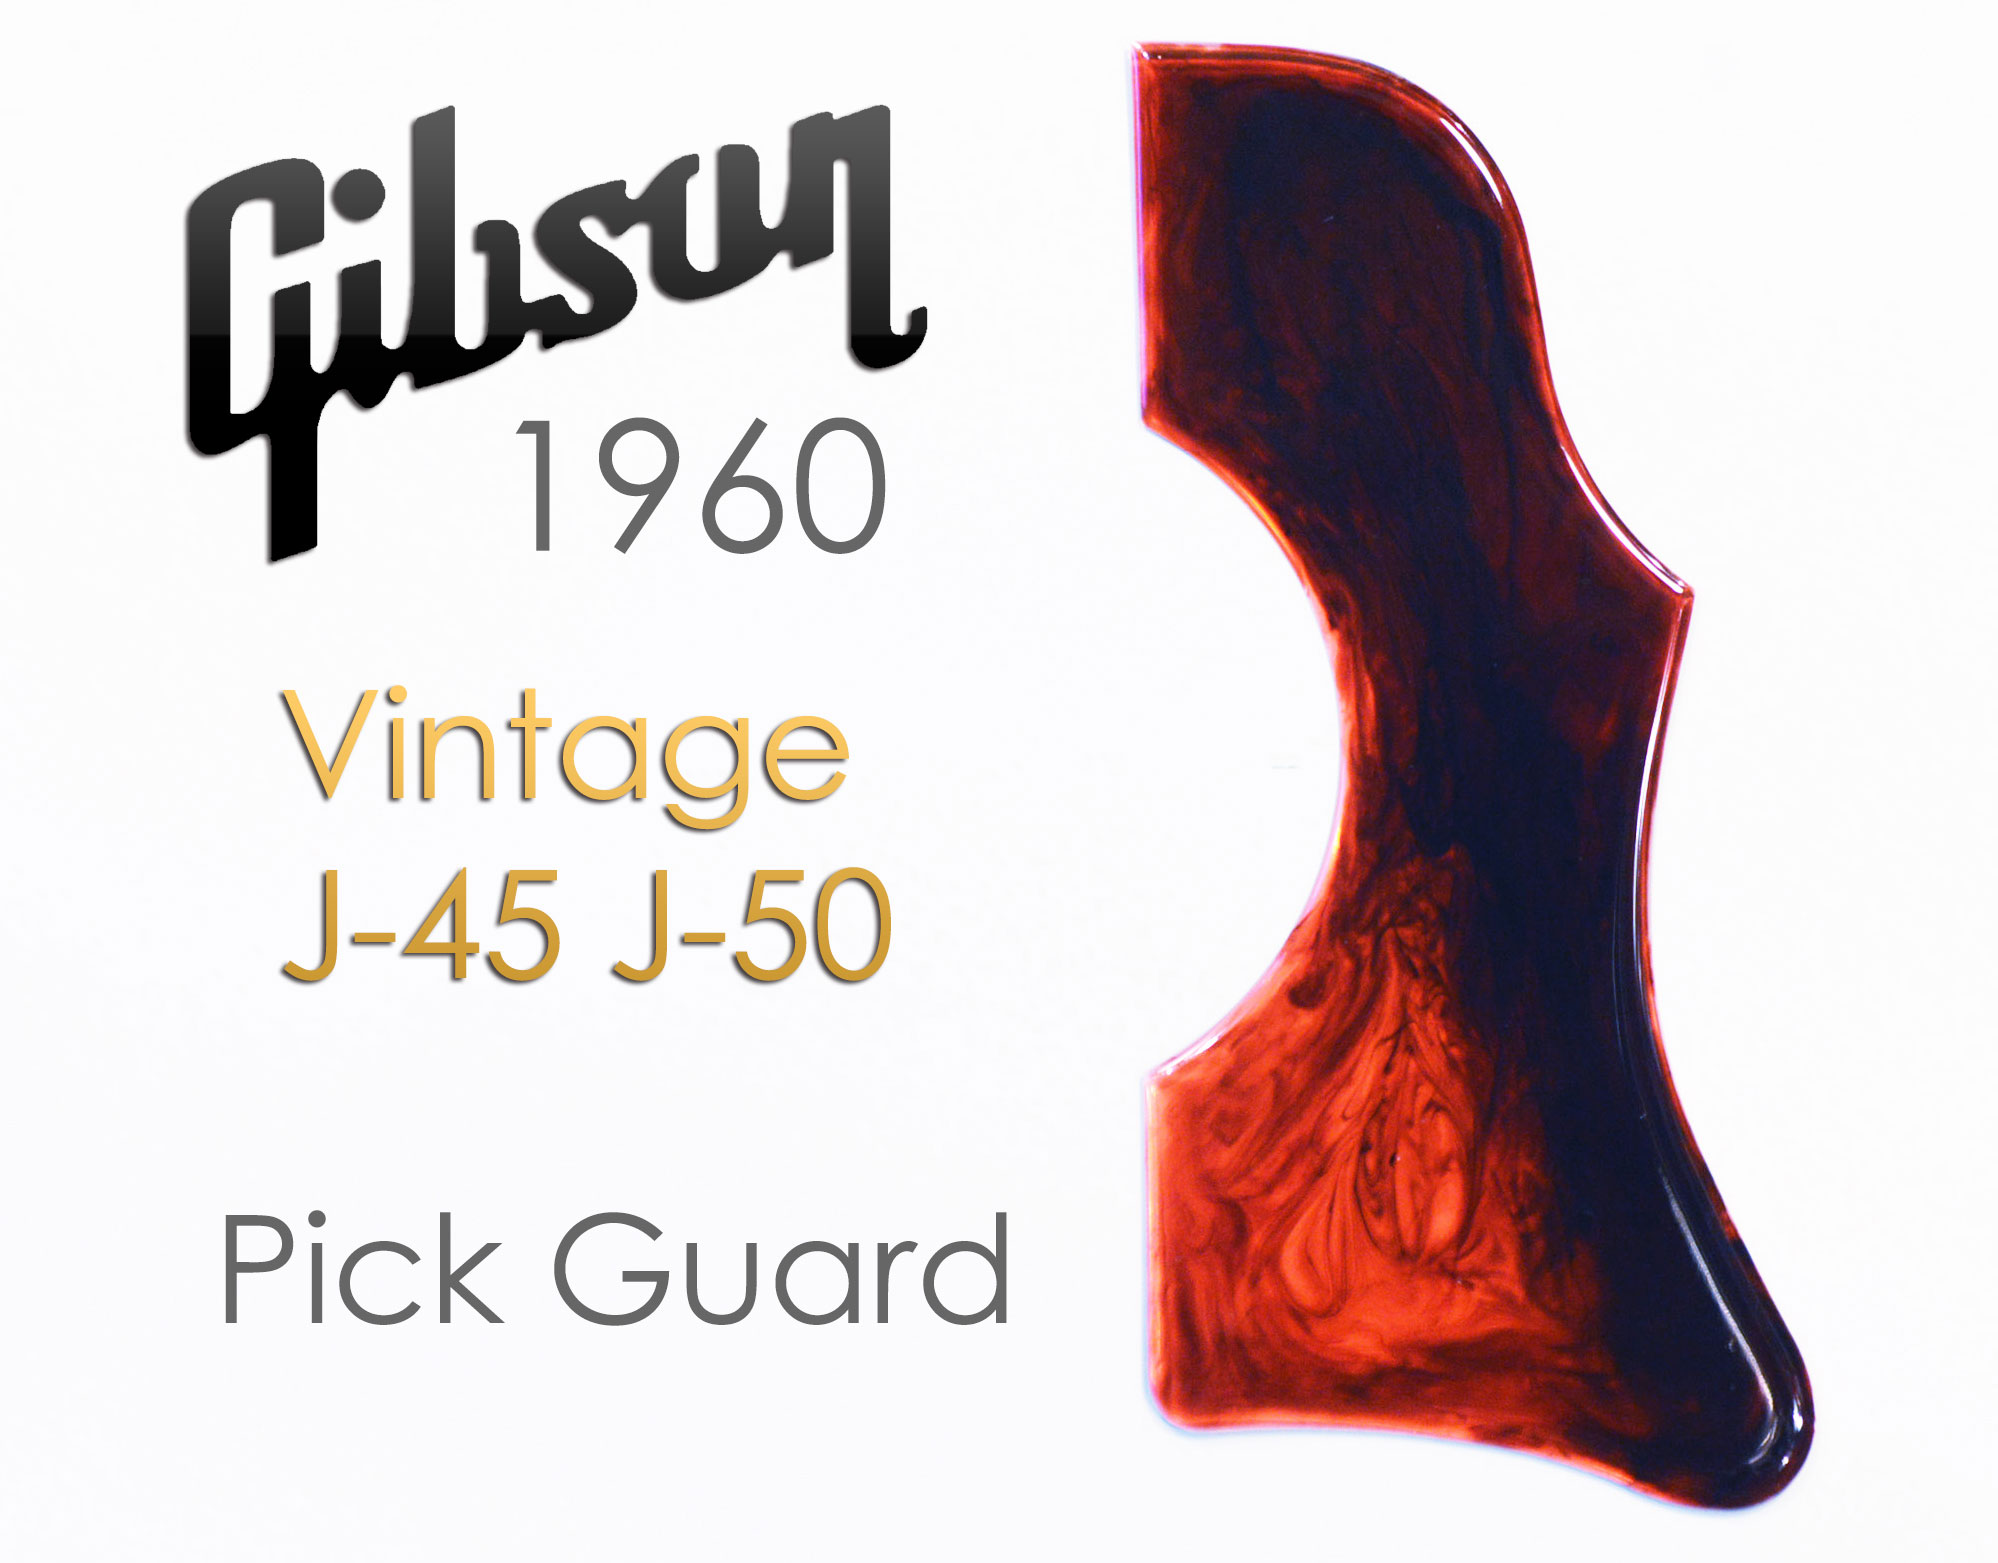 1960年代 ビンテージ ギブソン J-45 J-50 カスタム ピックガード Gibson 純正品 ピックガードを極限再現